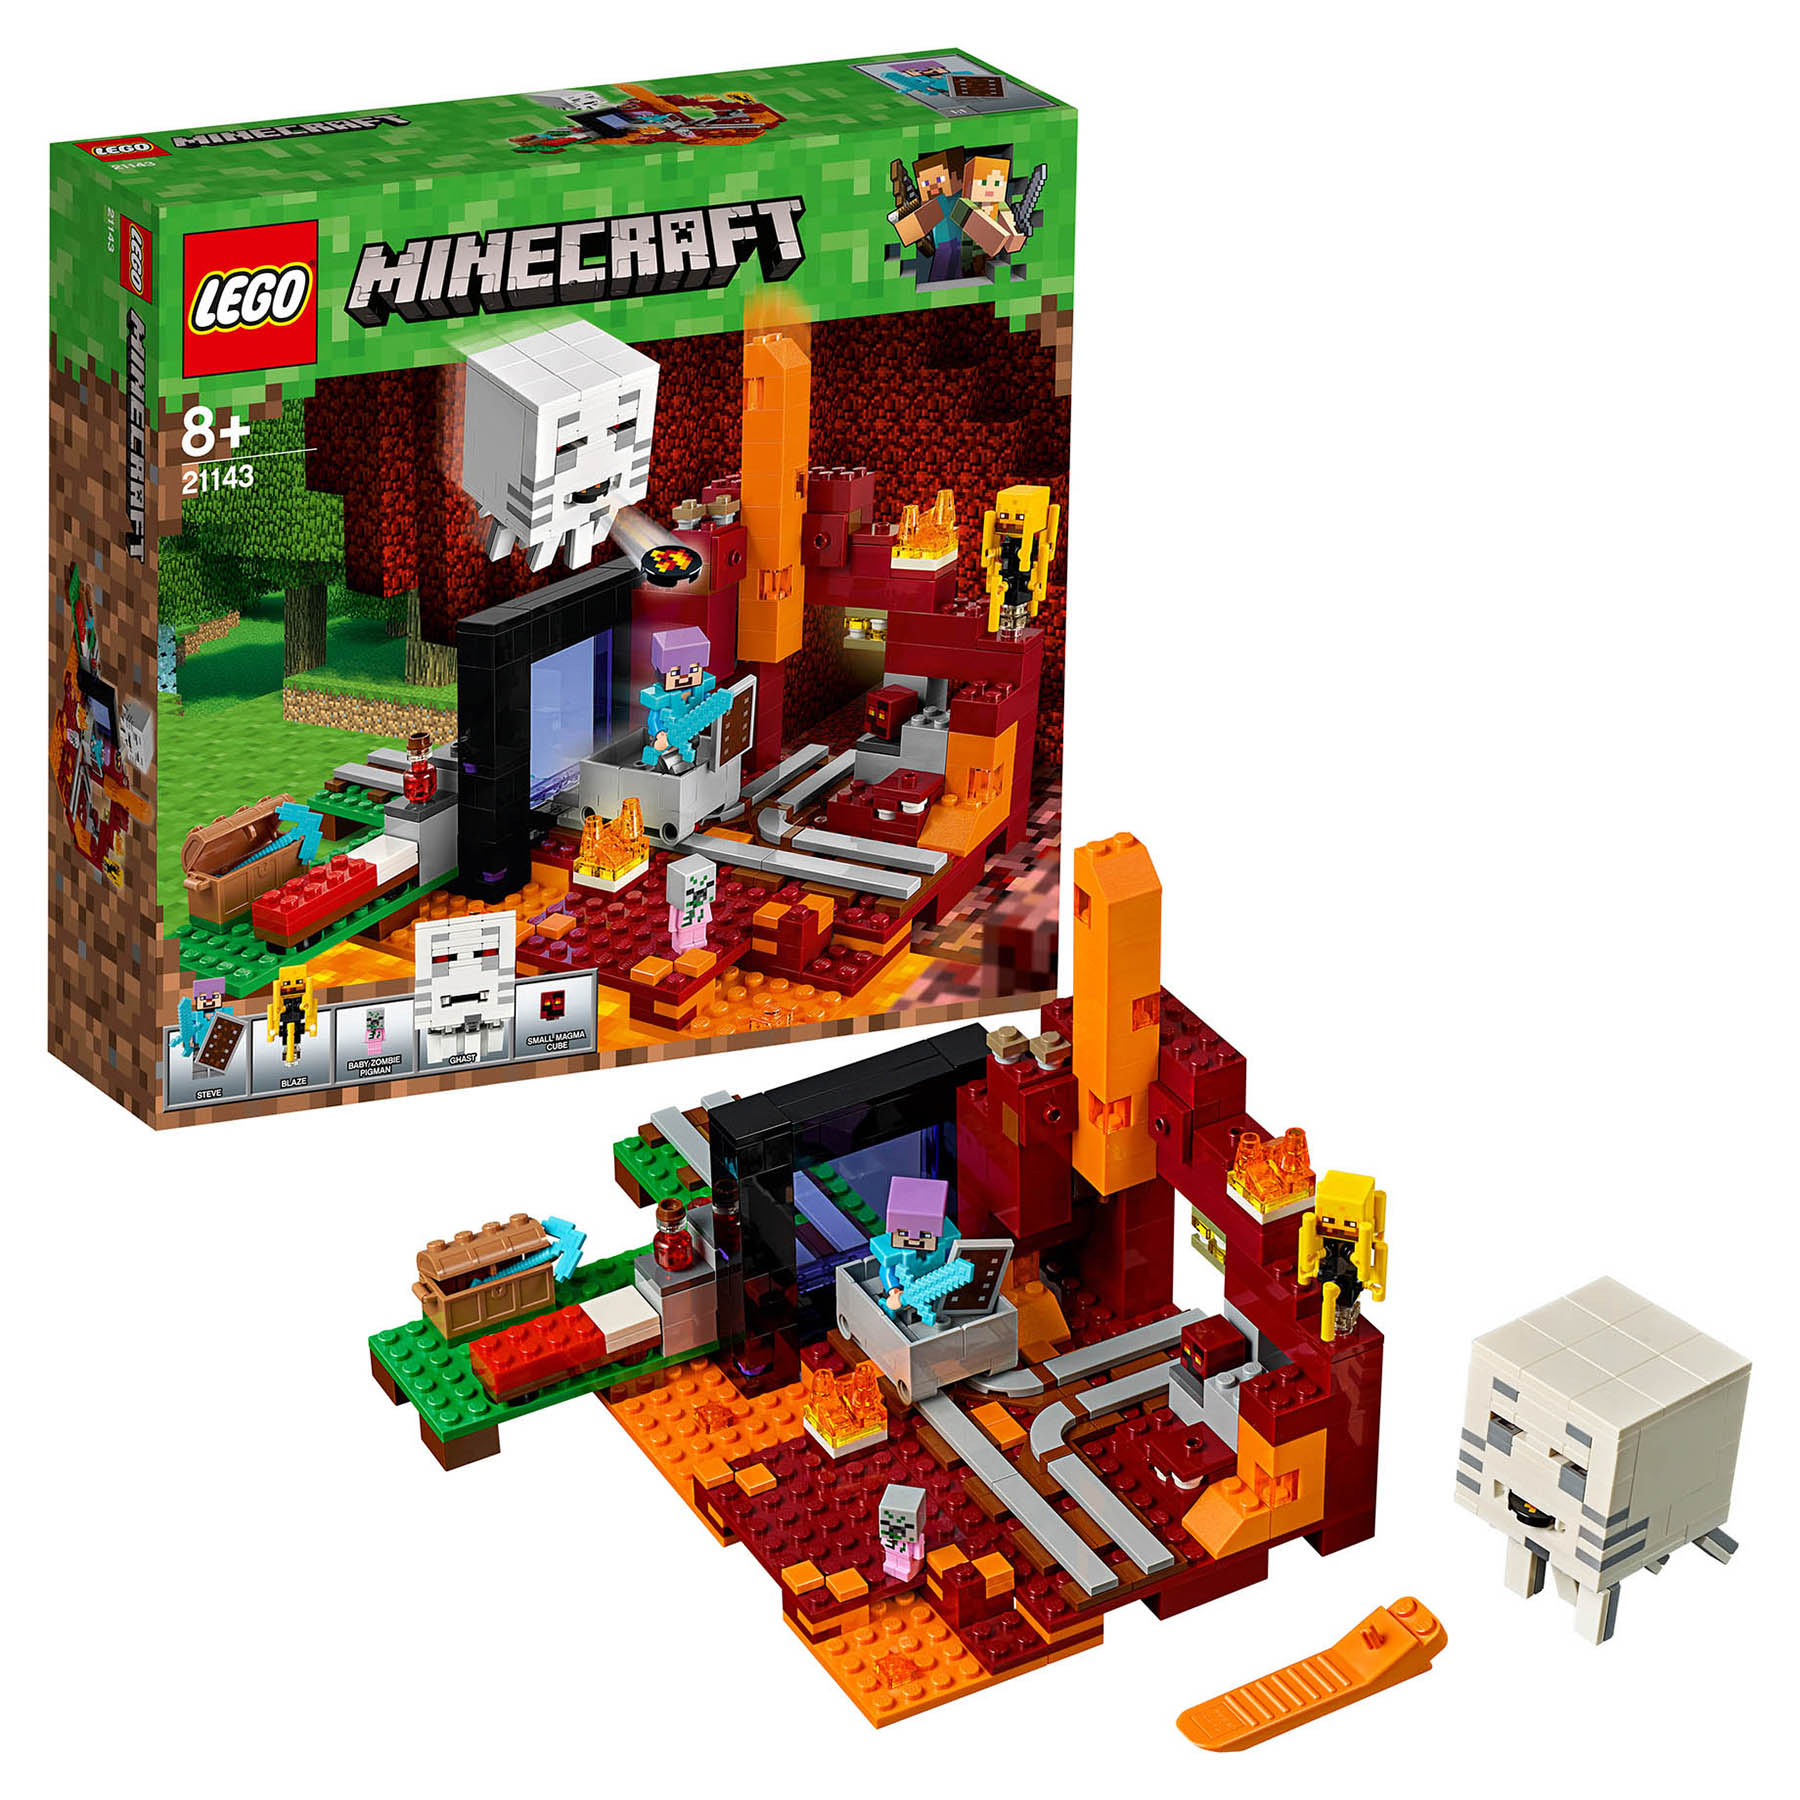 Designer Lego <font><b>Minecraft</b></font> <font><b>21143</b></font> portal in the dungeon image